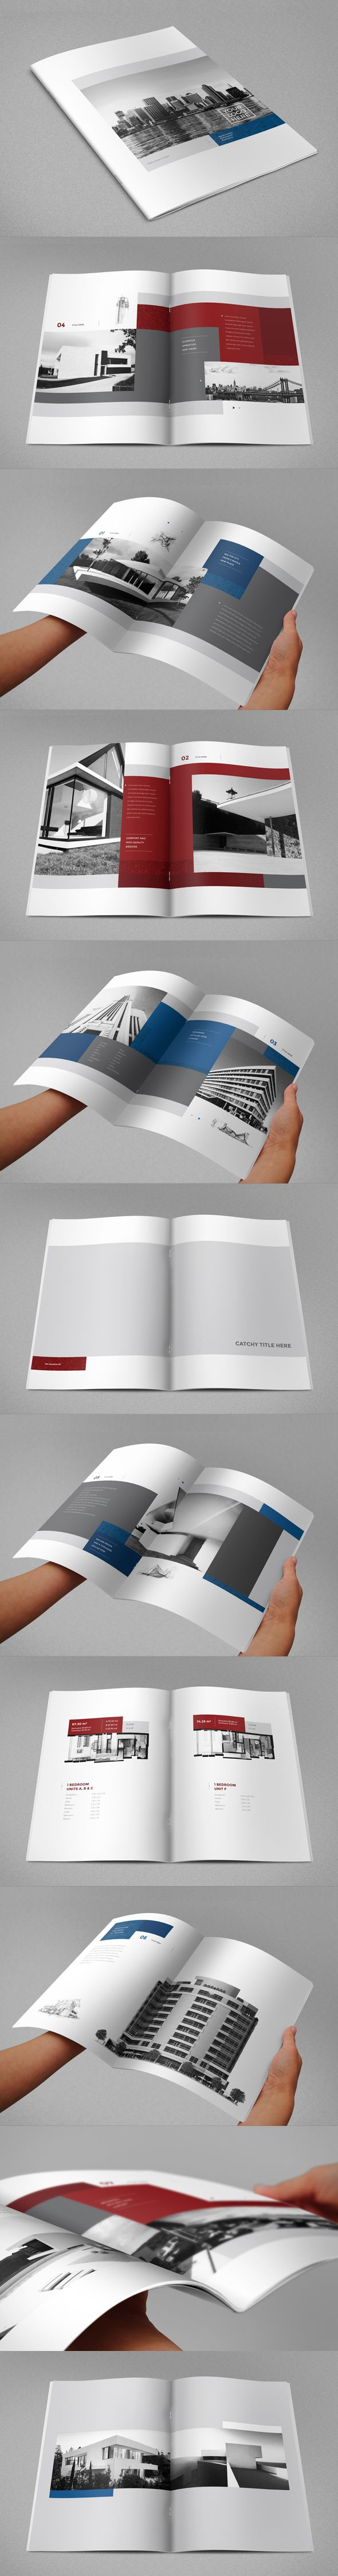 Real Estate Brochure 3 by Abra Design, via Behance